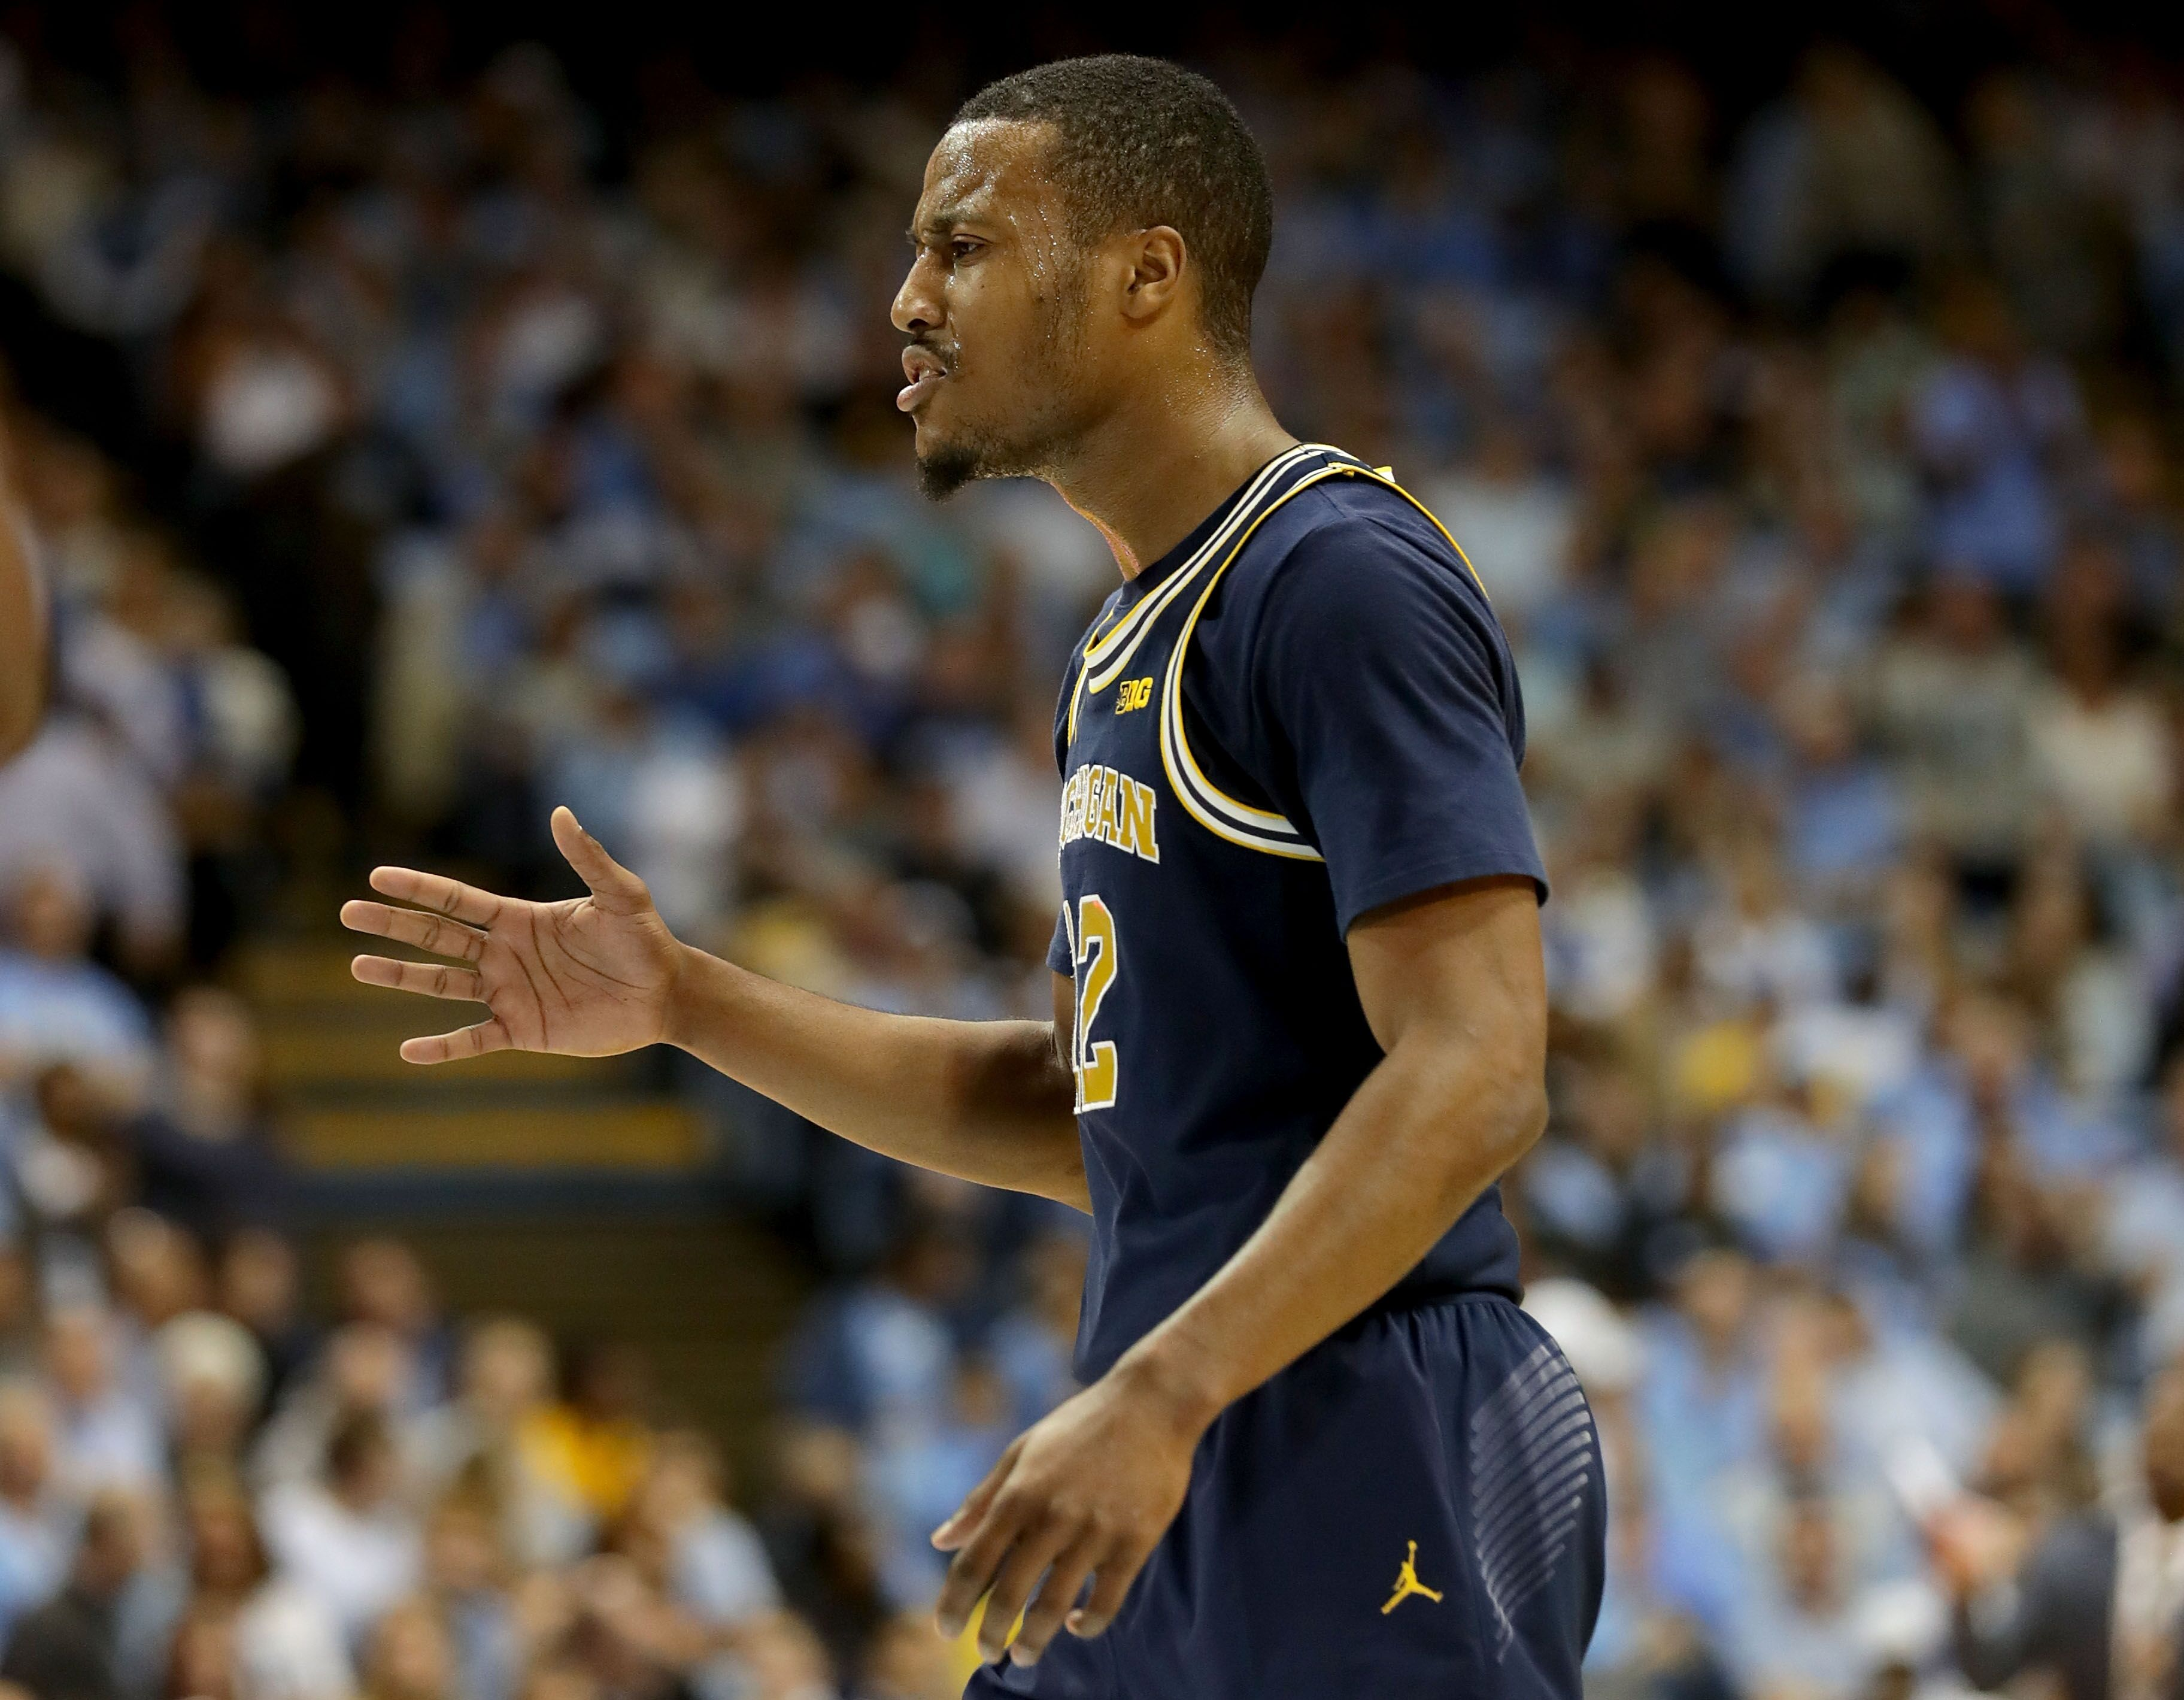 Big Ten Basketball: Why Are The Bubble Teams In Trouble?